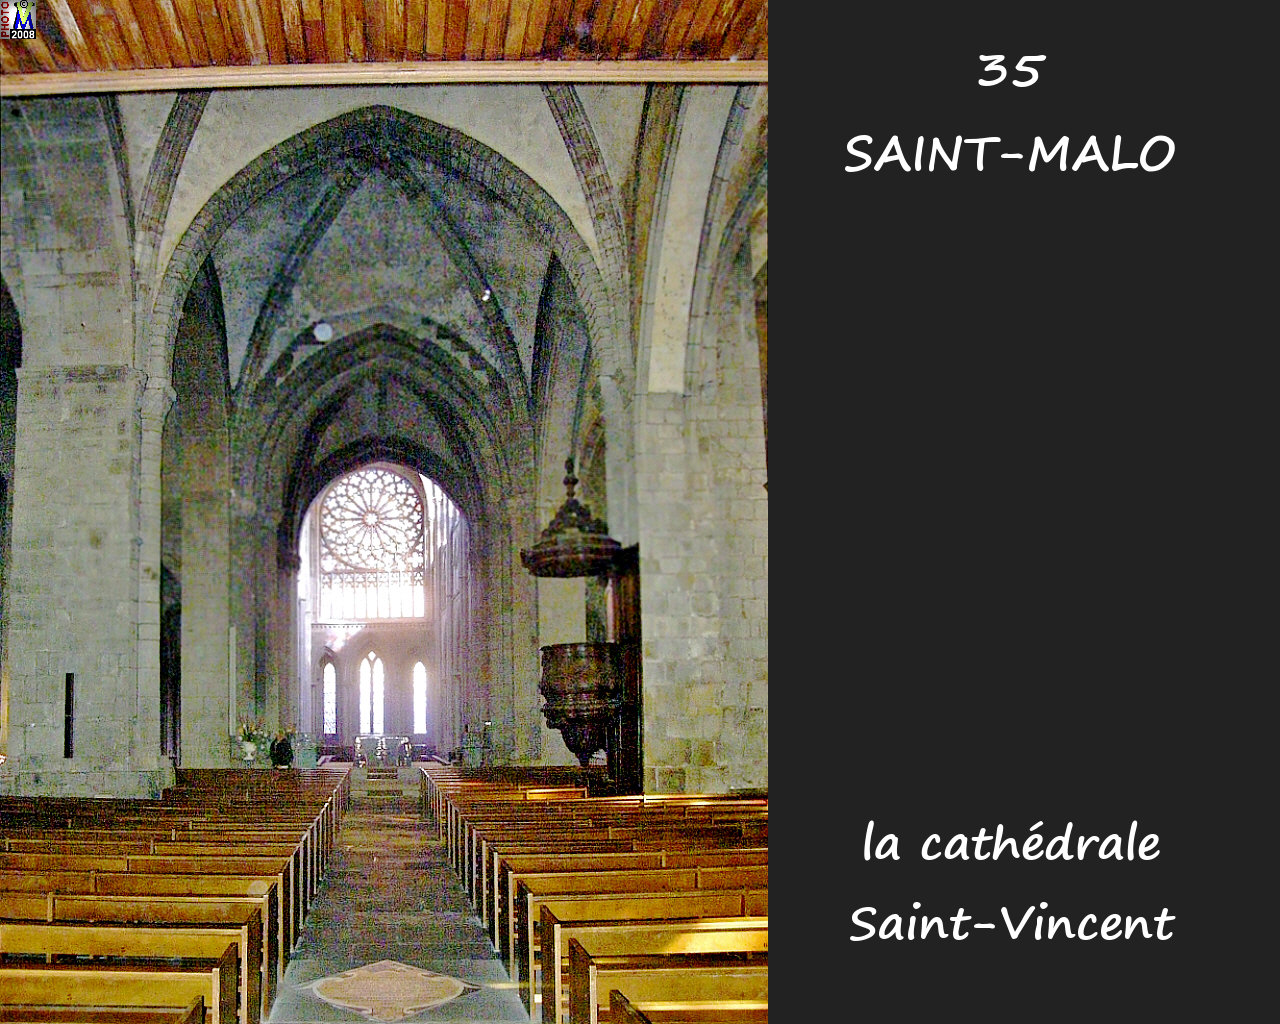 35StMALO_cathedrale_200.jpg